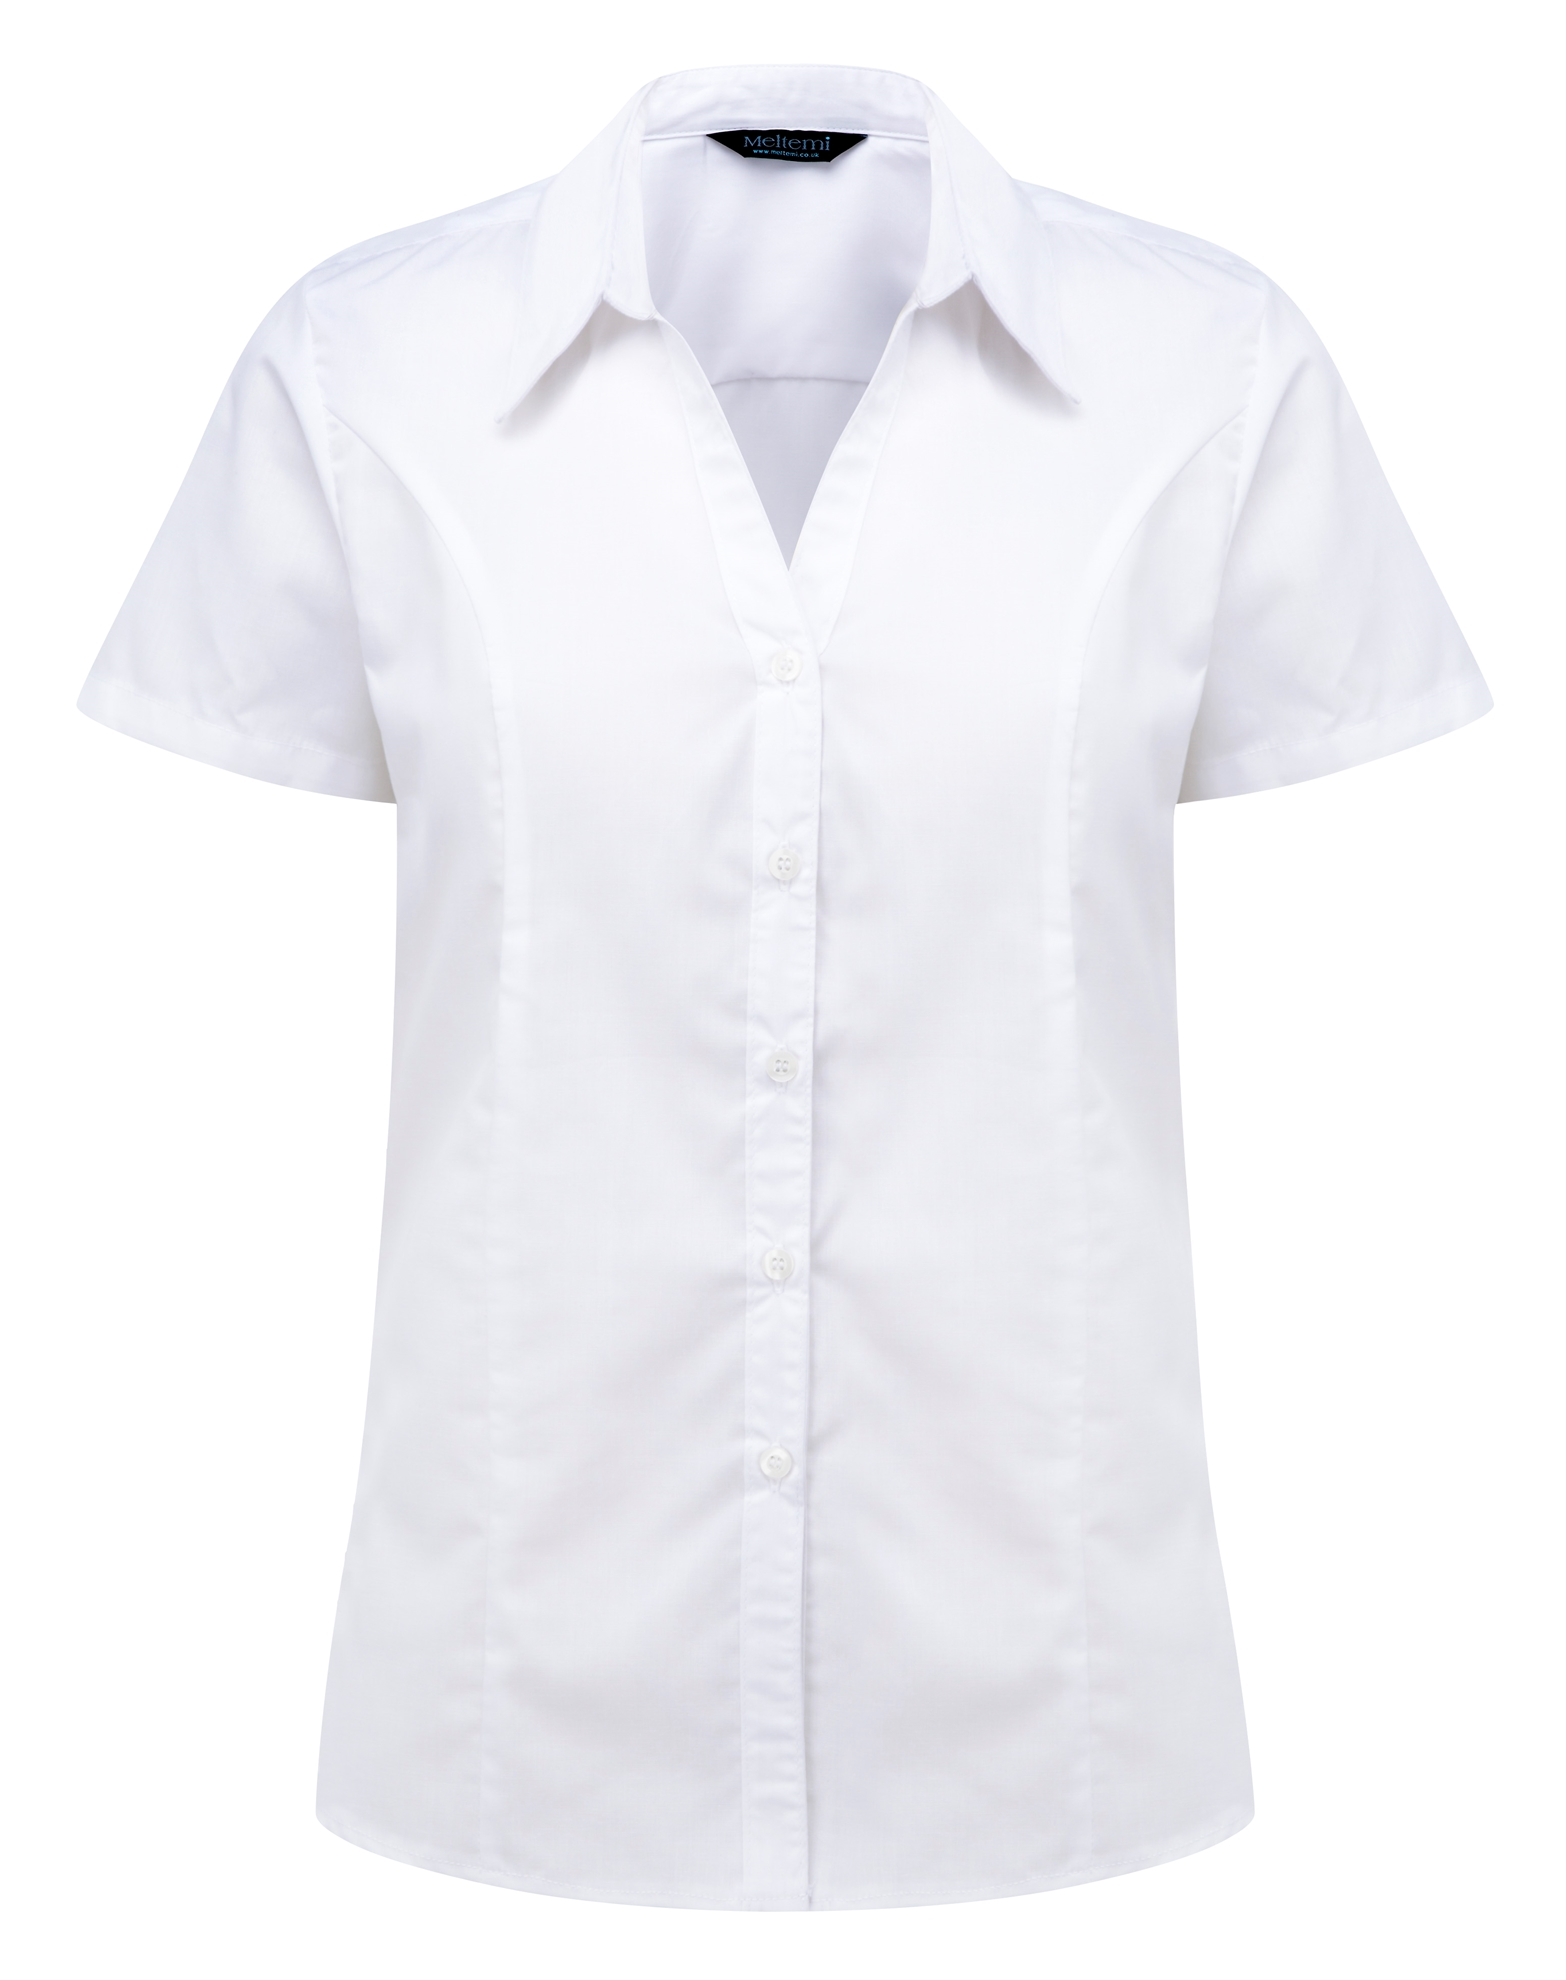 Picture of Semi-Fitted Polycotton Blouse - Plain White